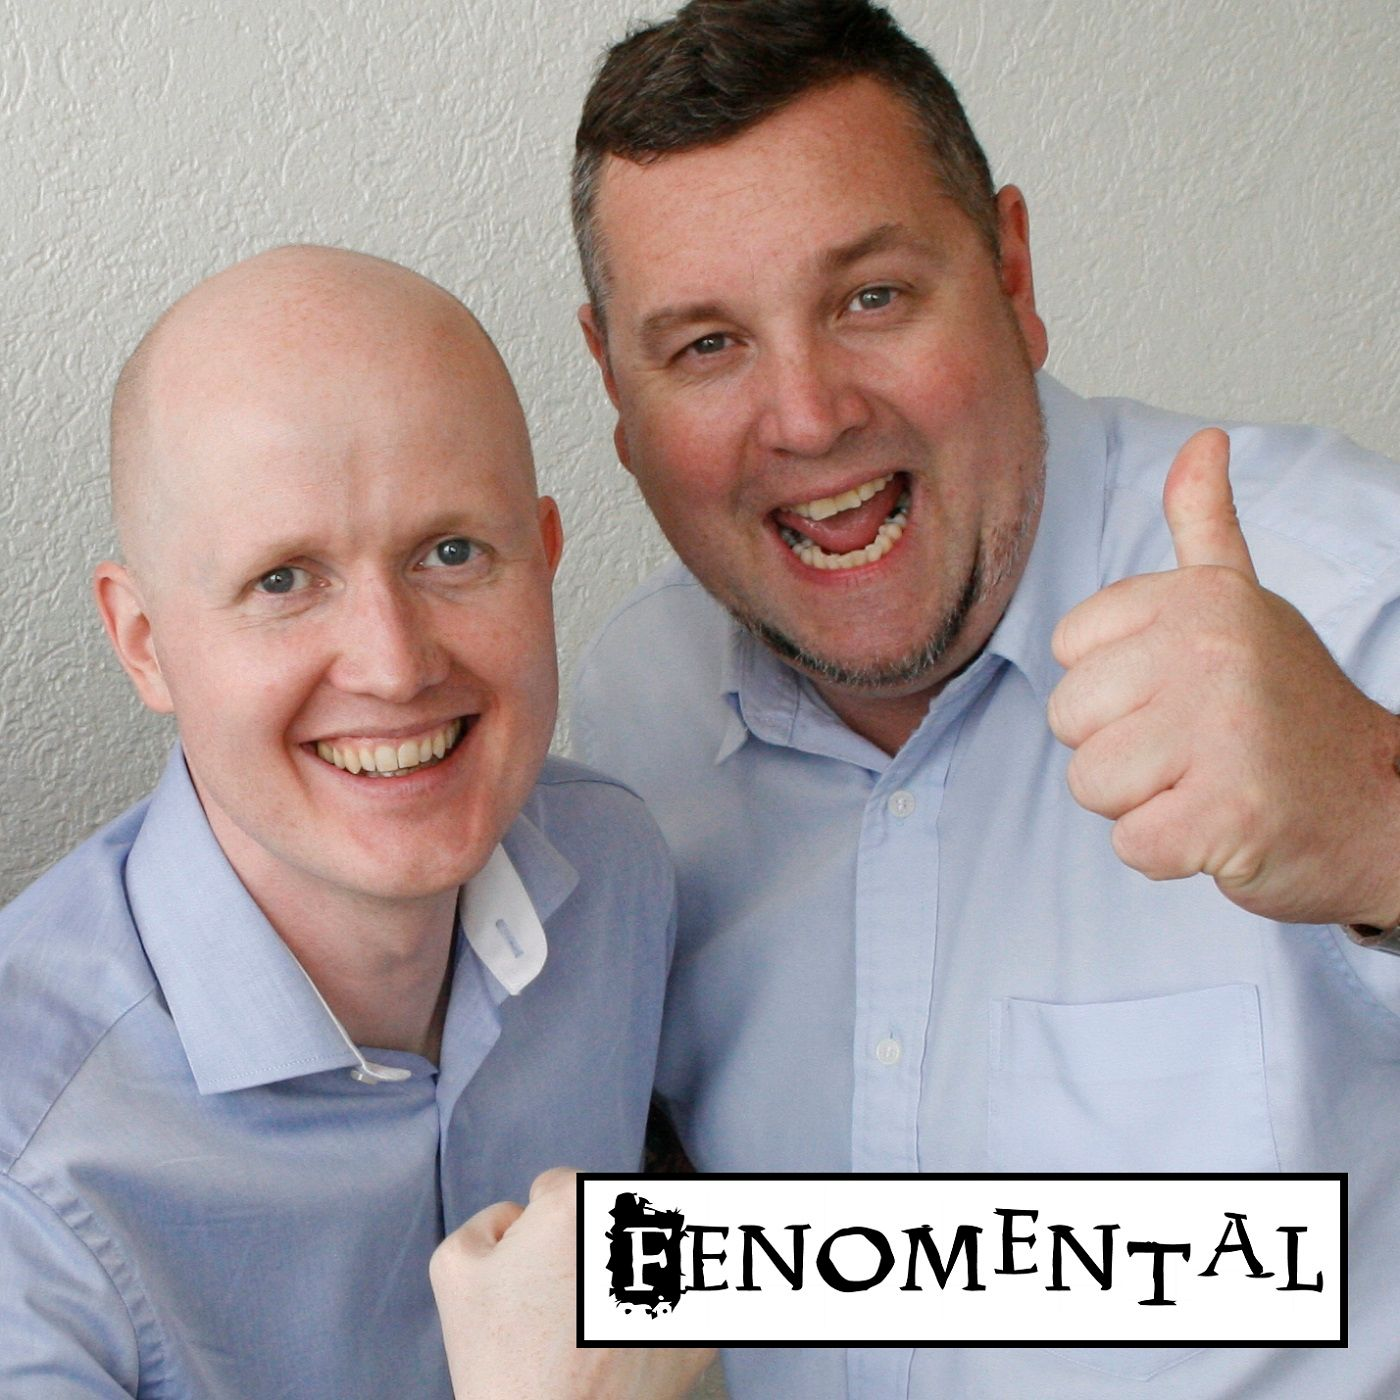 Fenomental Podcast